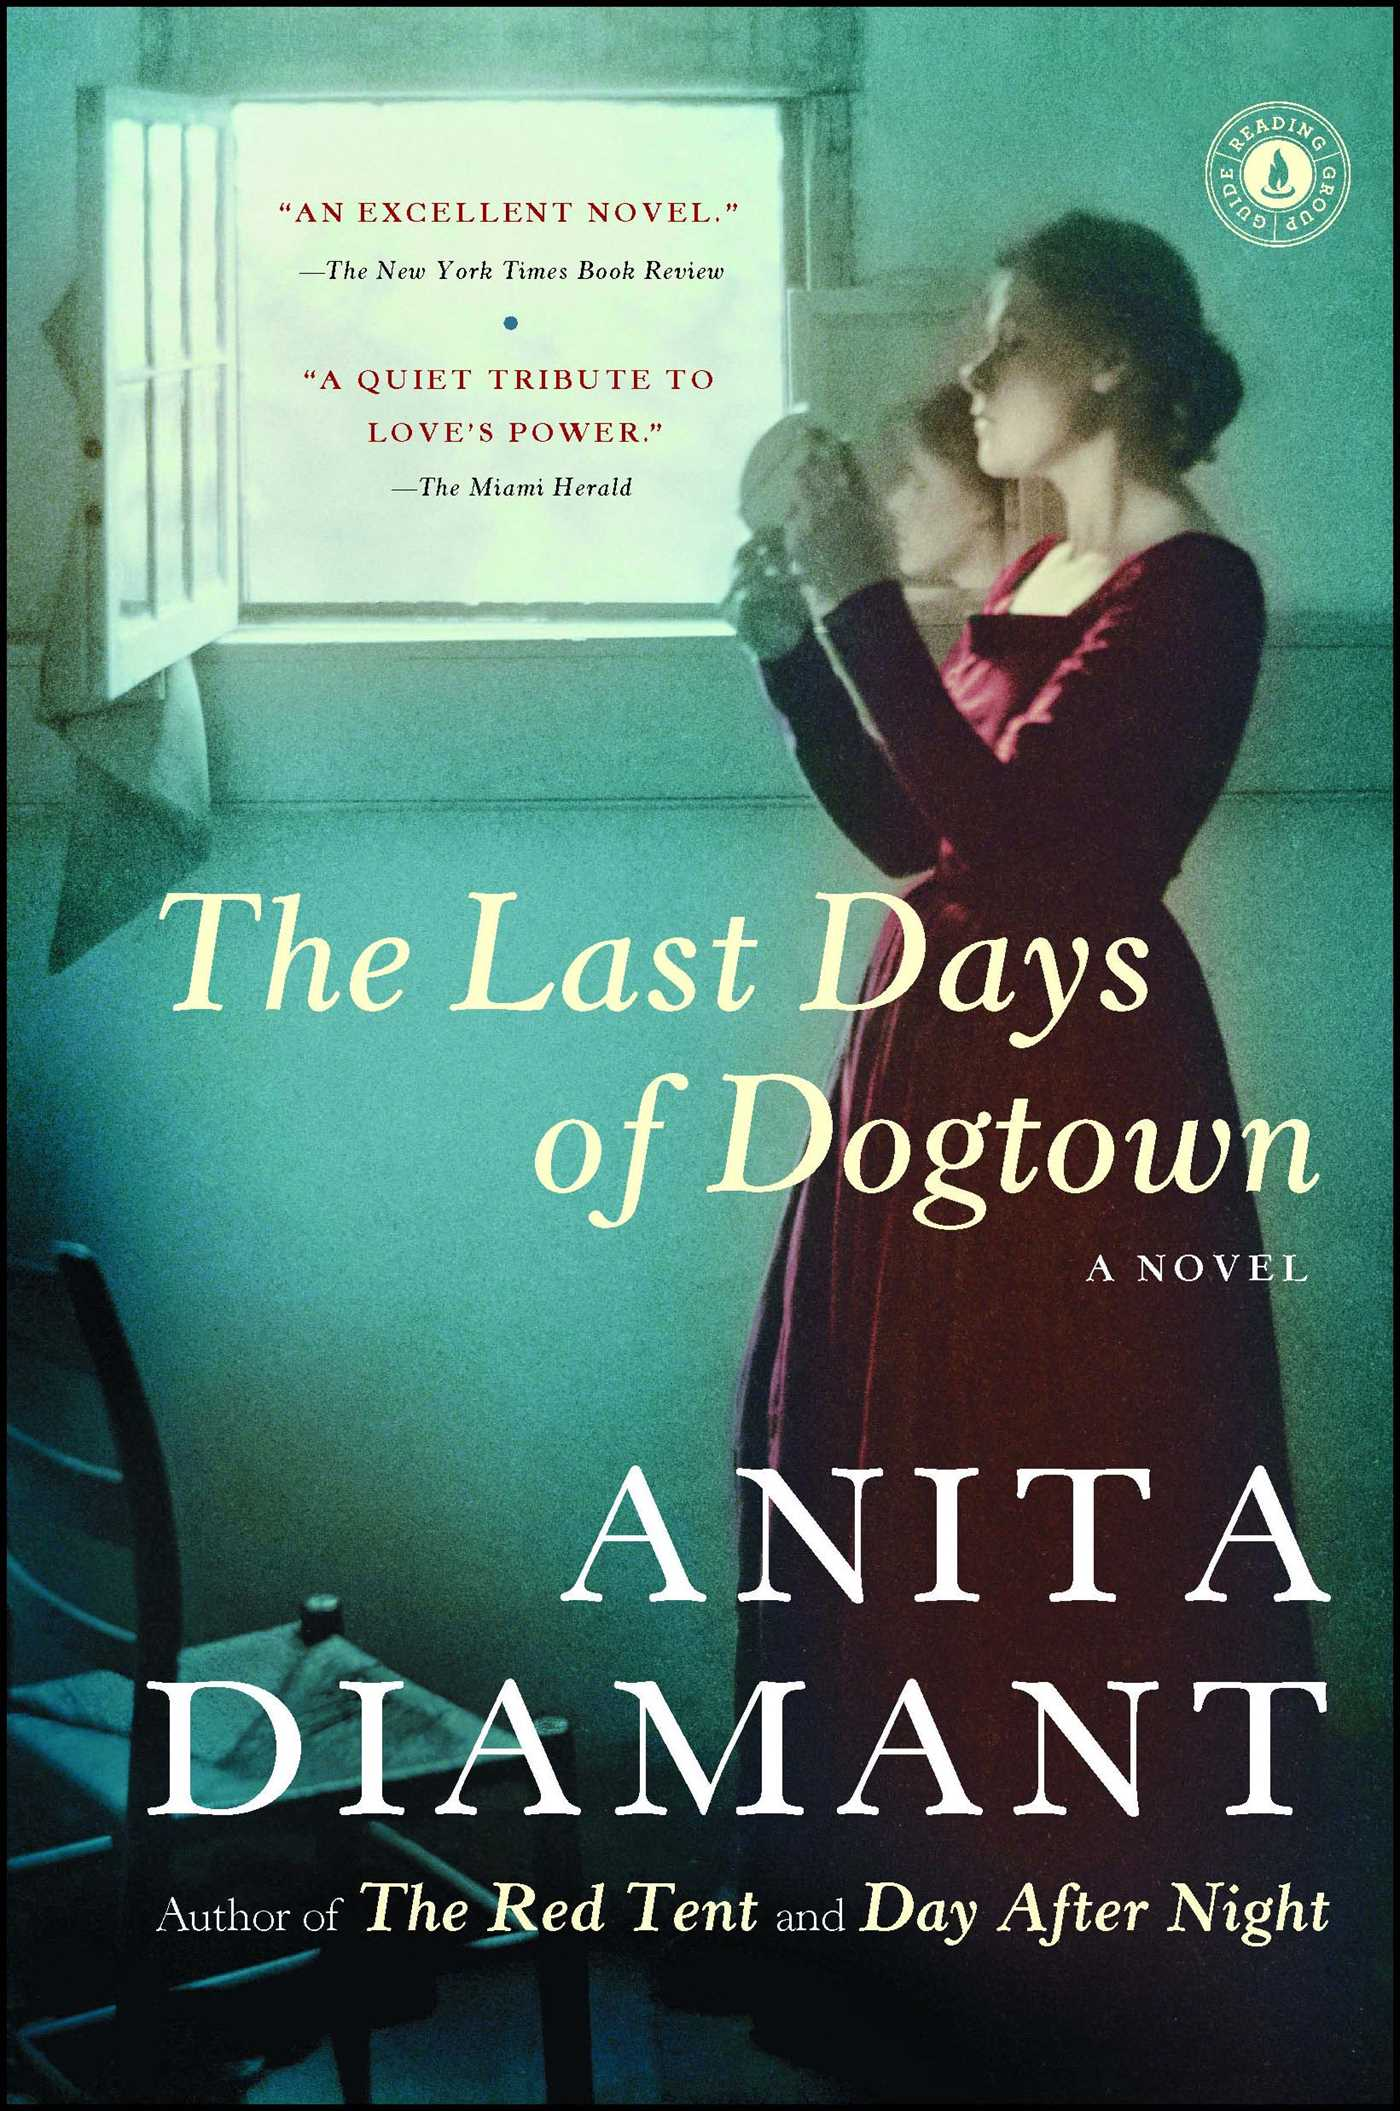 The last days of dogtown 9780743225748 hr